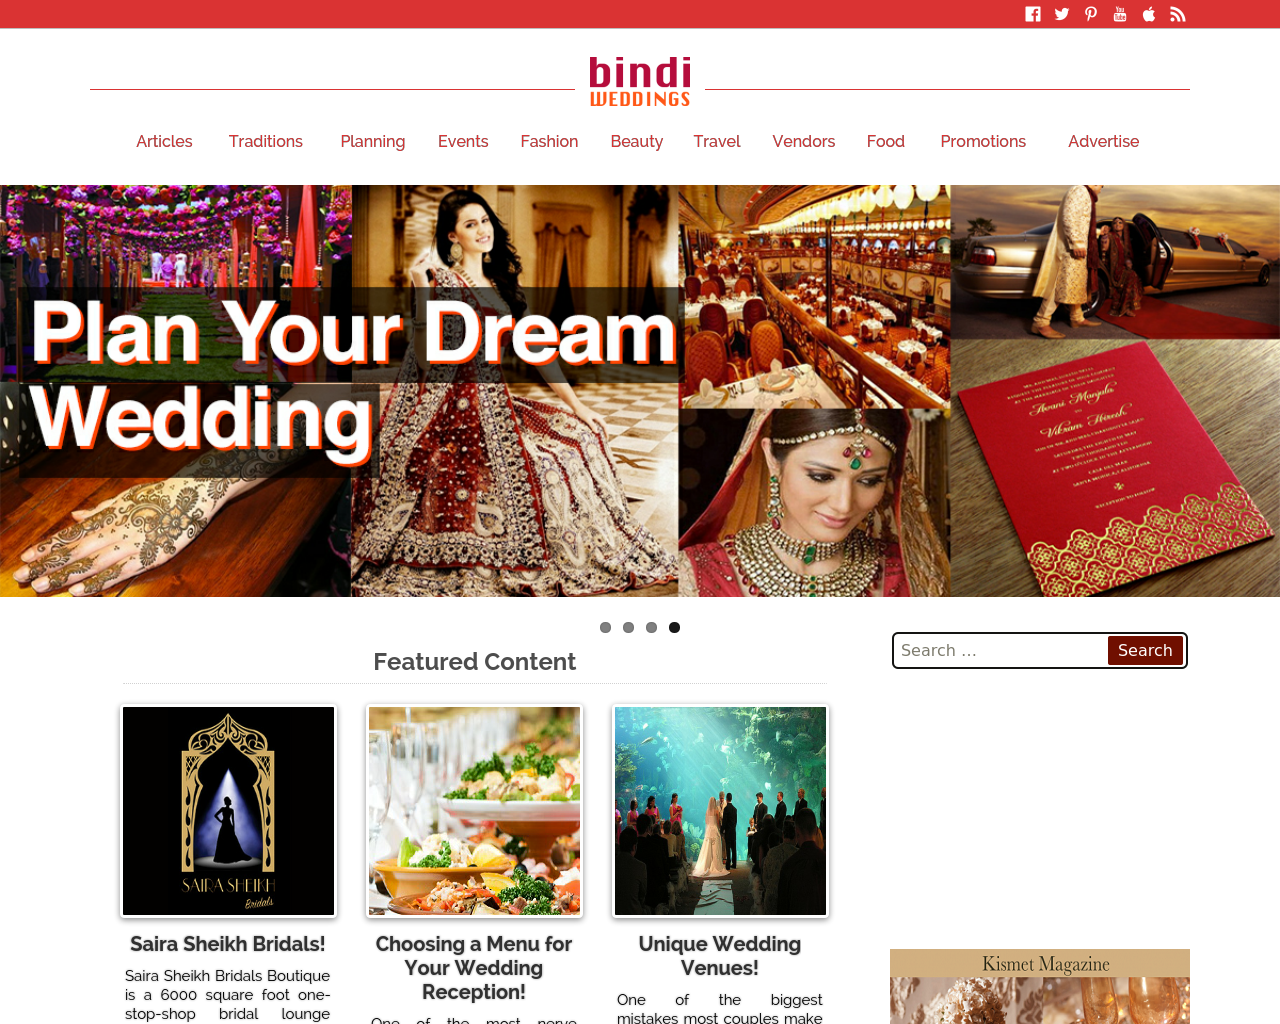 BindiWeddings-Advertising-Reviews-Pricing